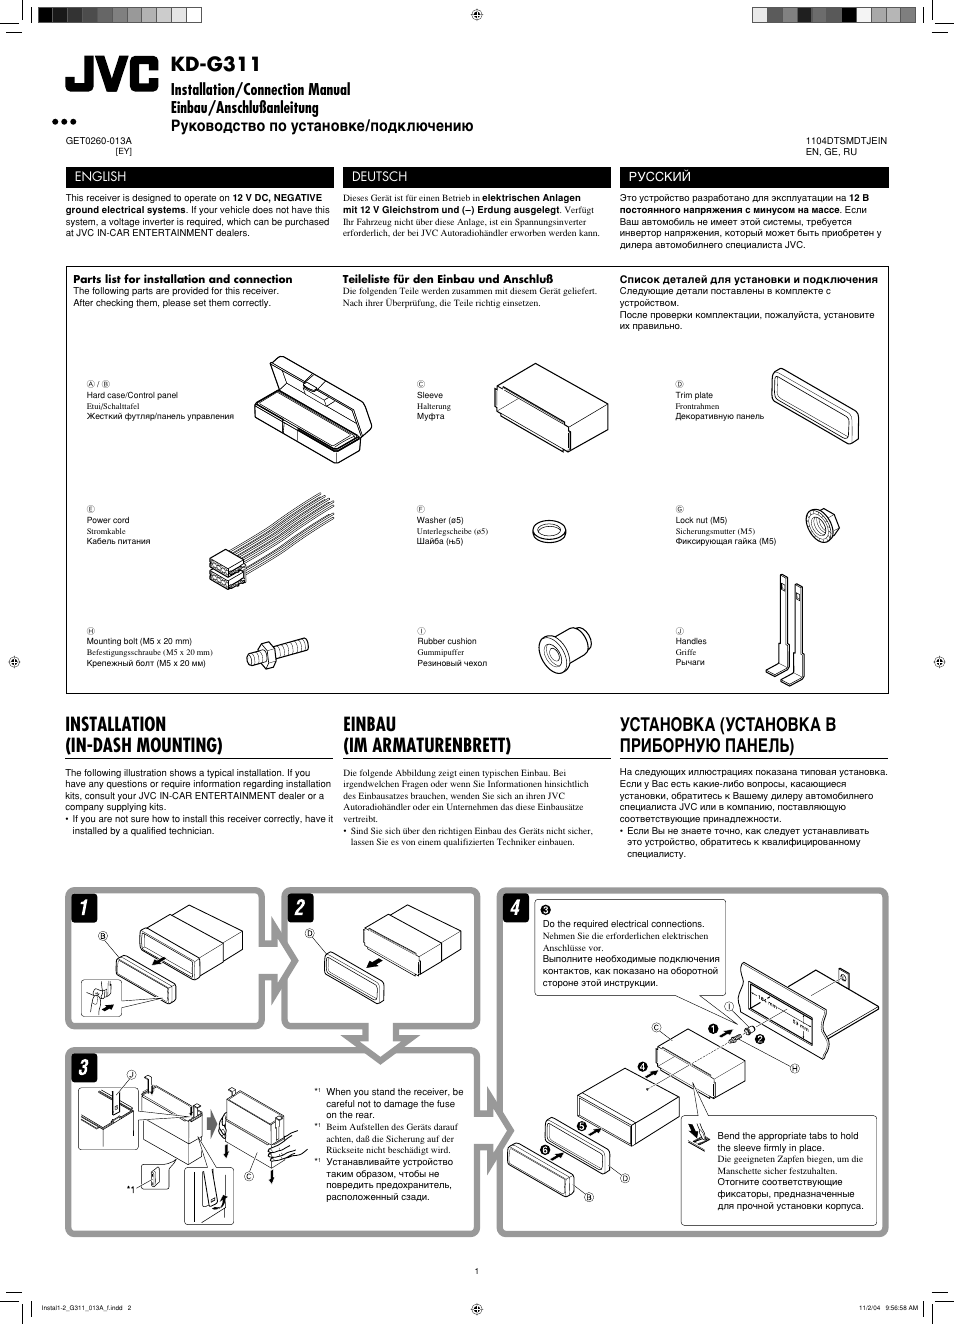 JVC KD-G311 User Manual | 4 pages